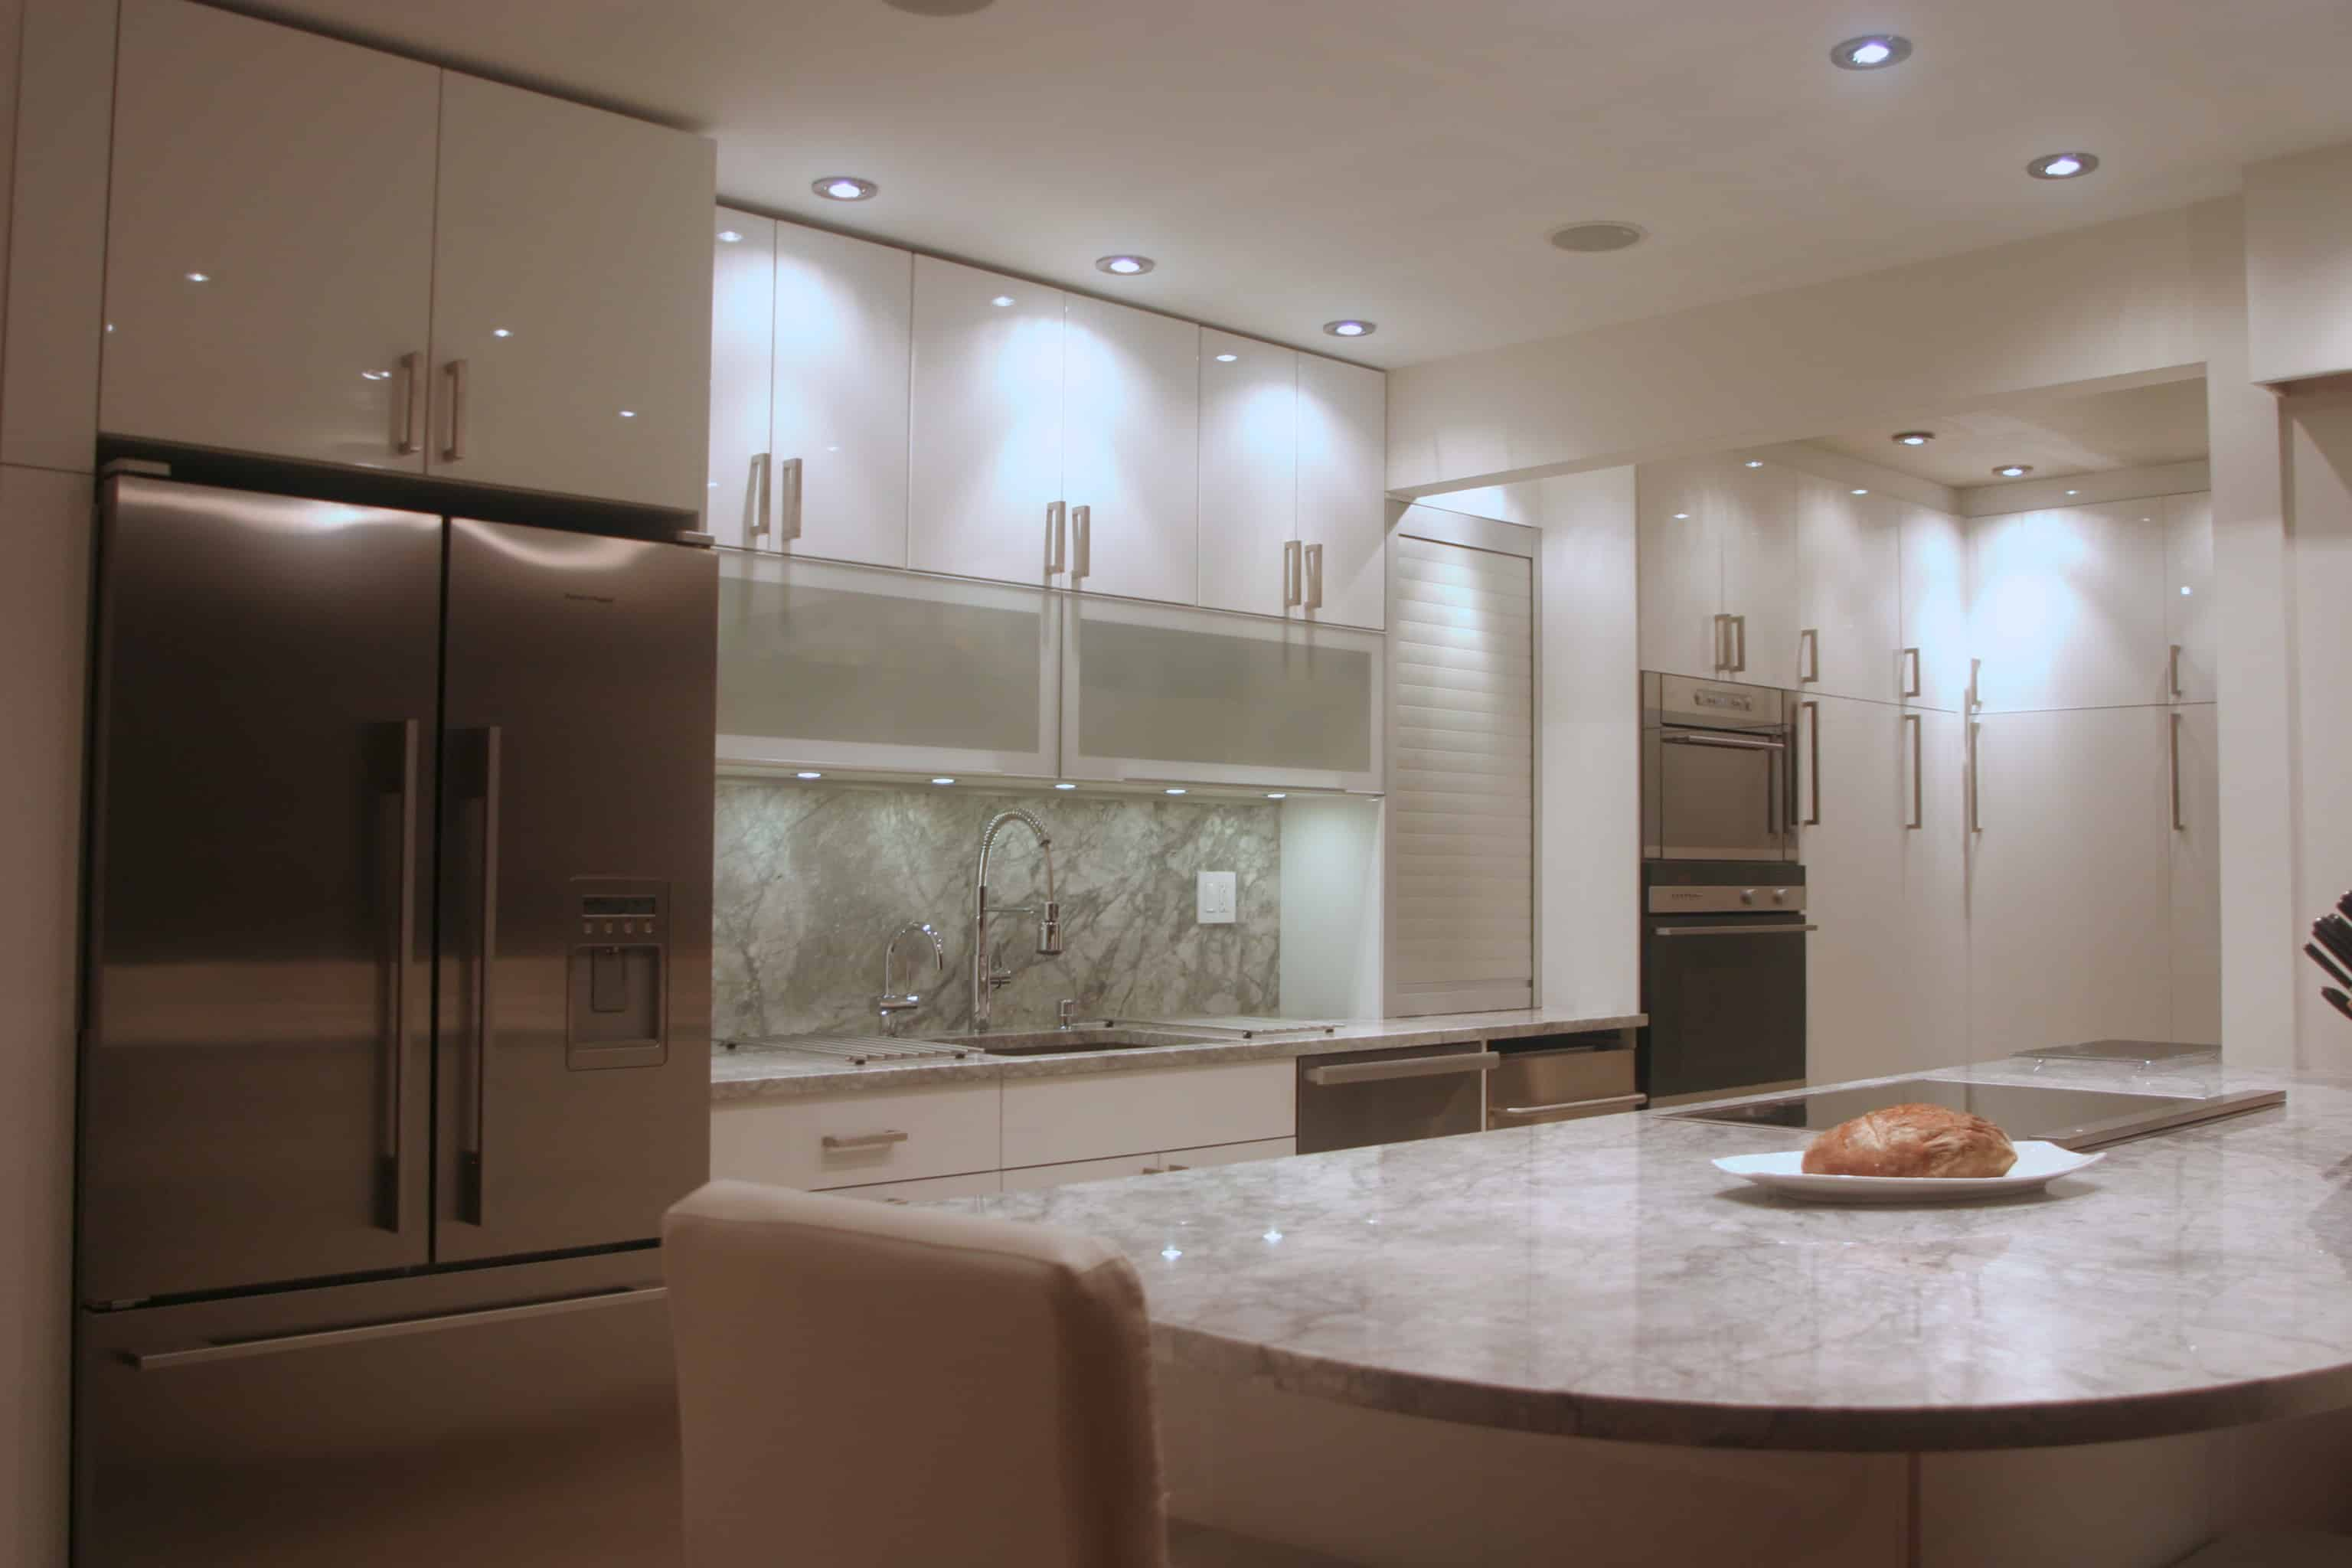 Kitchen Renovation Burnaby: Everything you could want in a kitchen